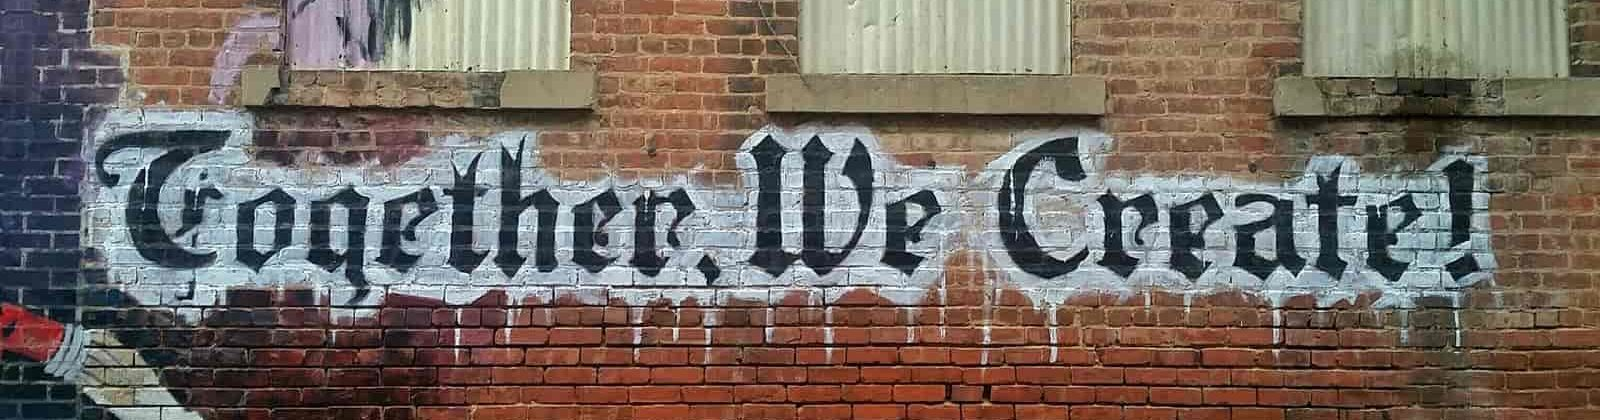 together we create graffiti christian eilers services page